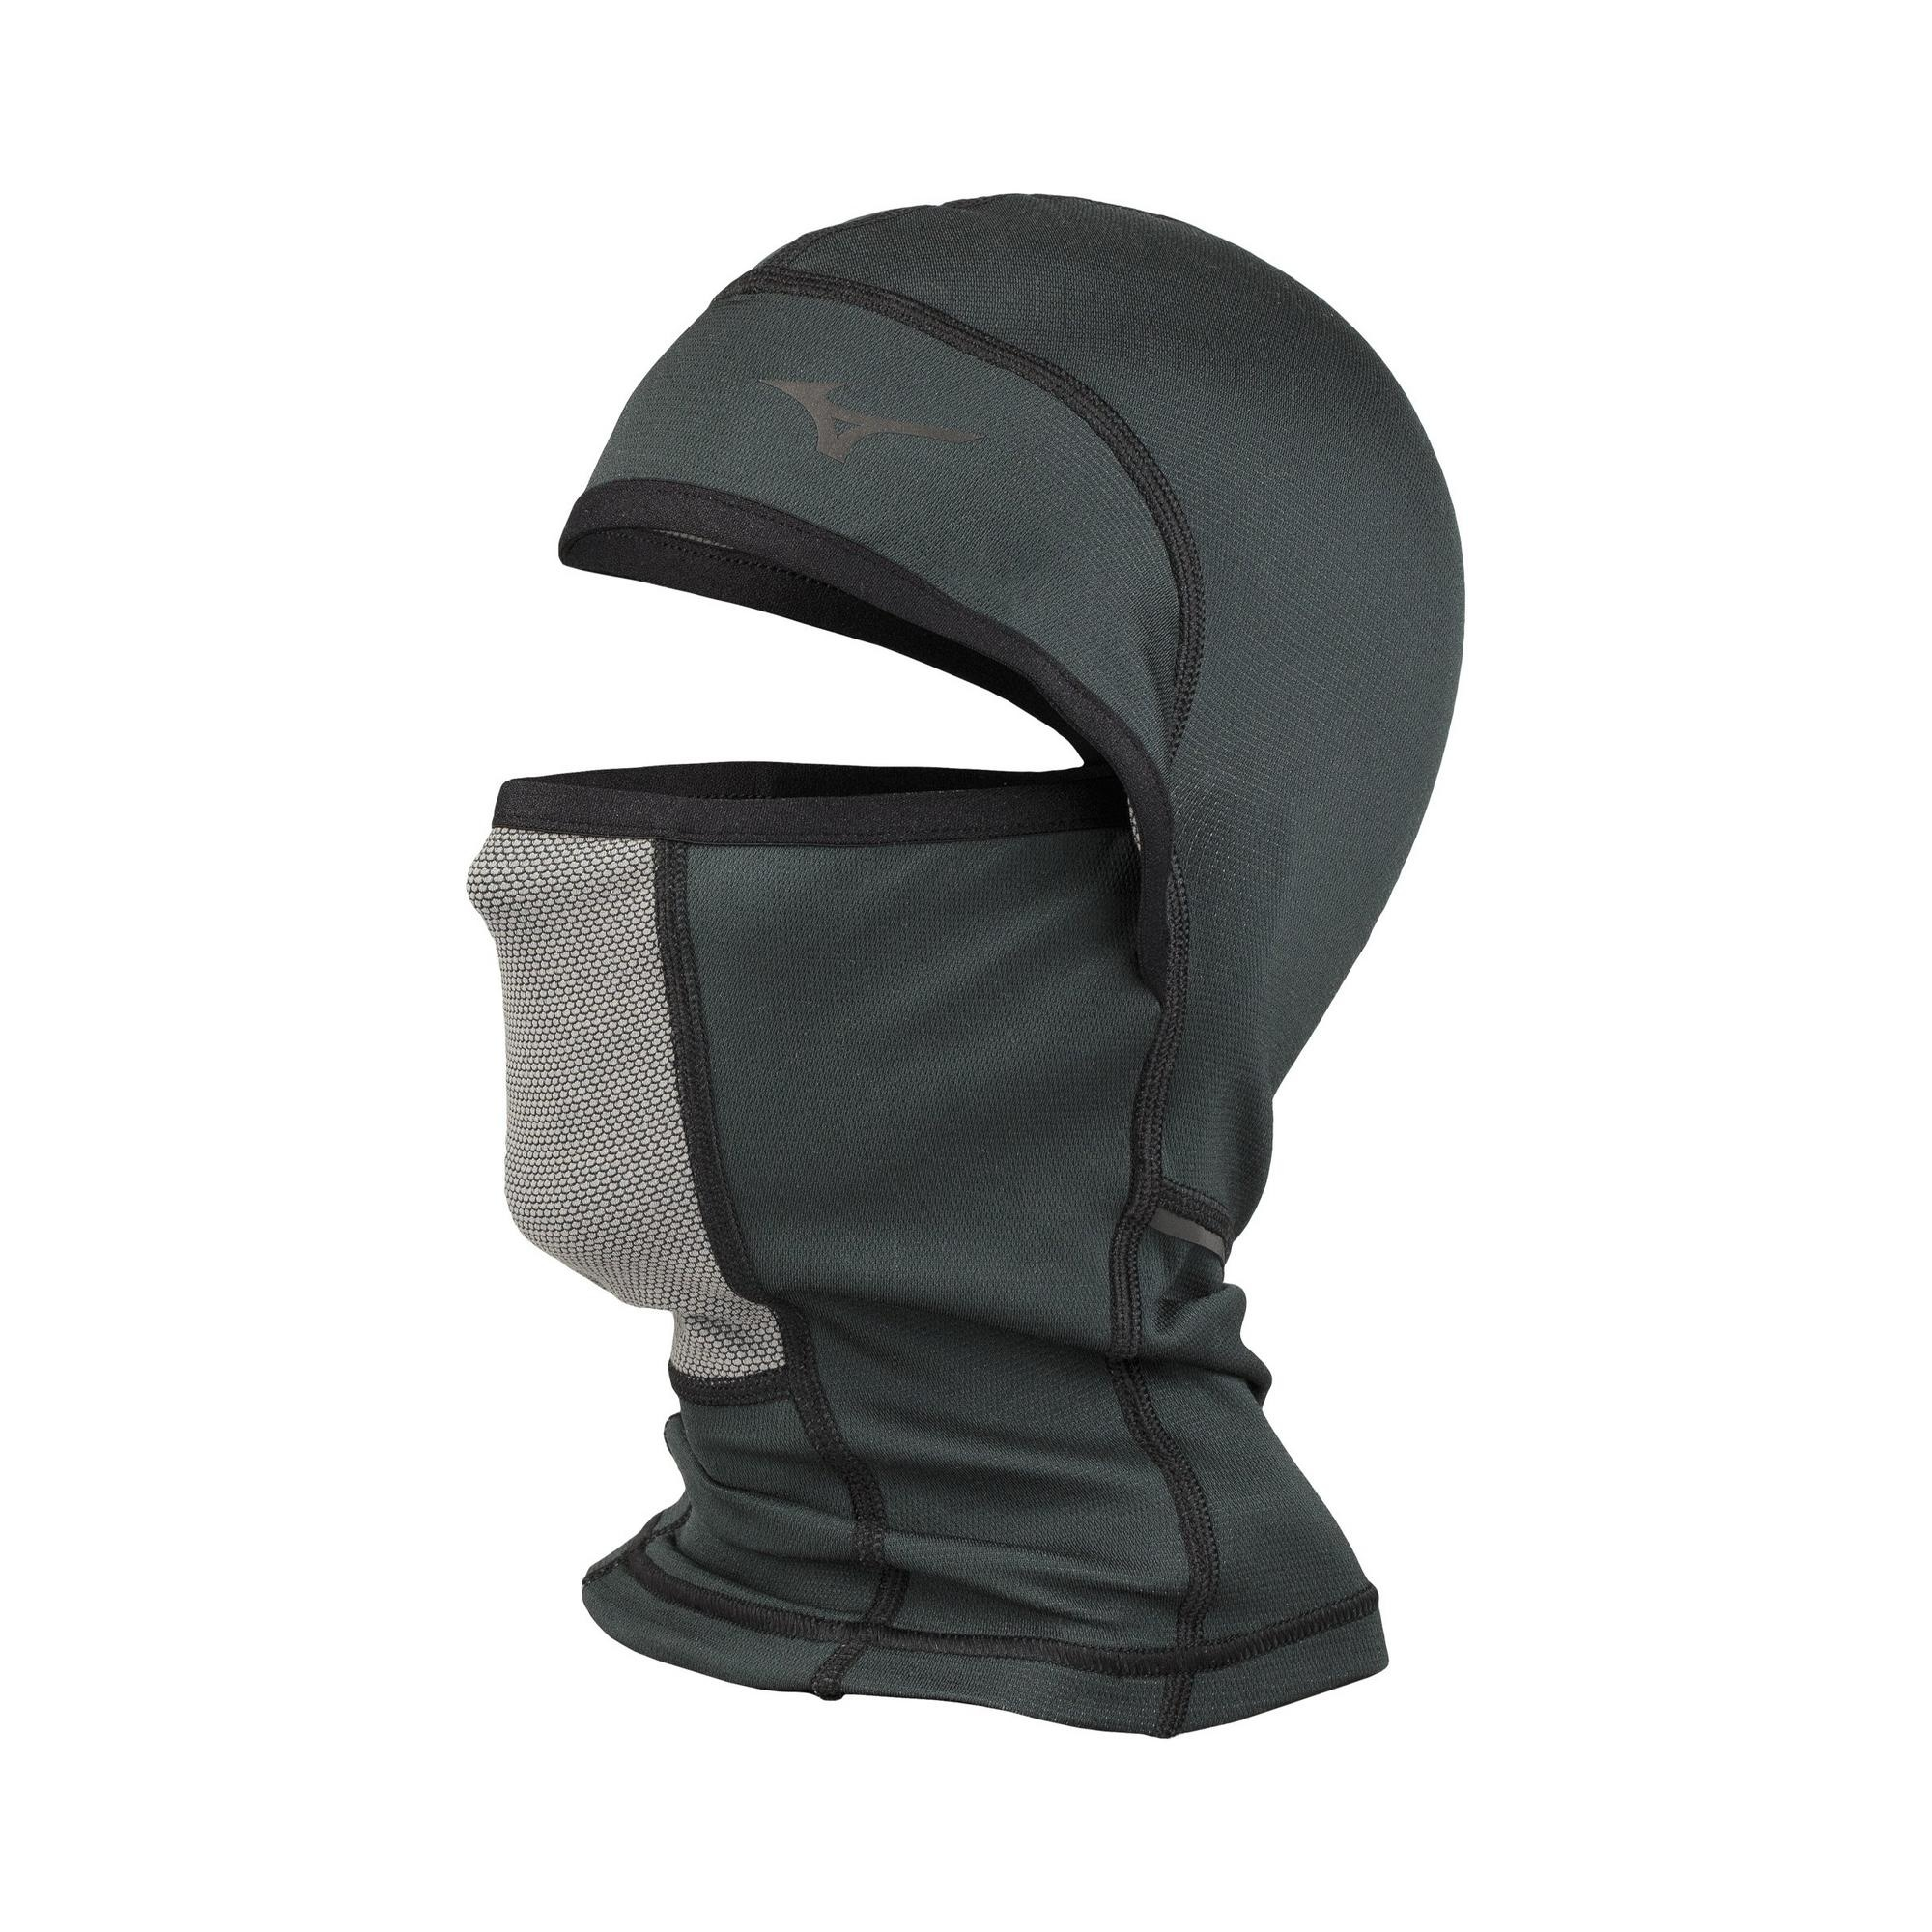 Mizuno Breath Thermo Balaclava, Black, OSFA